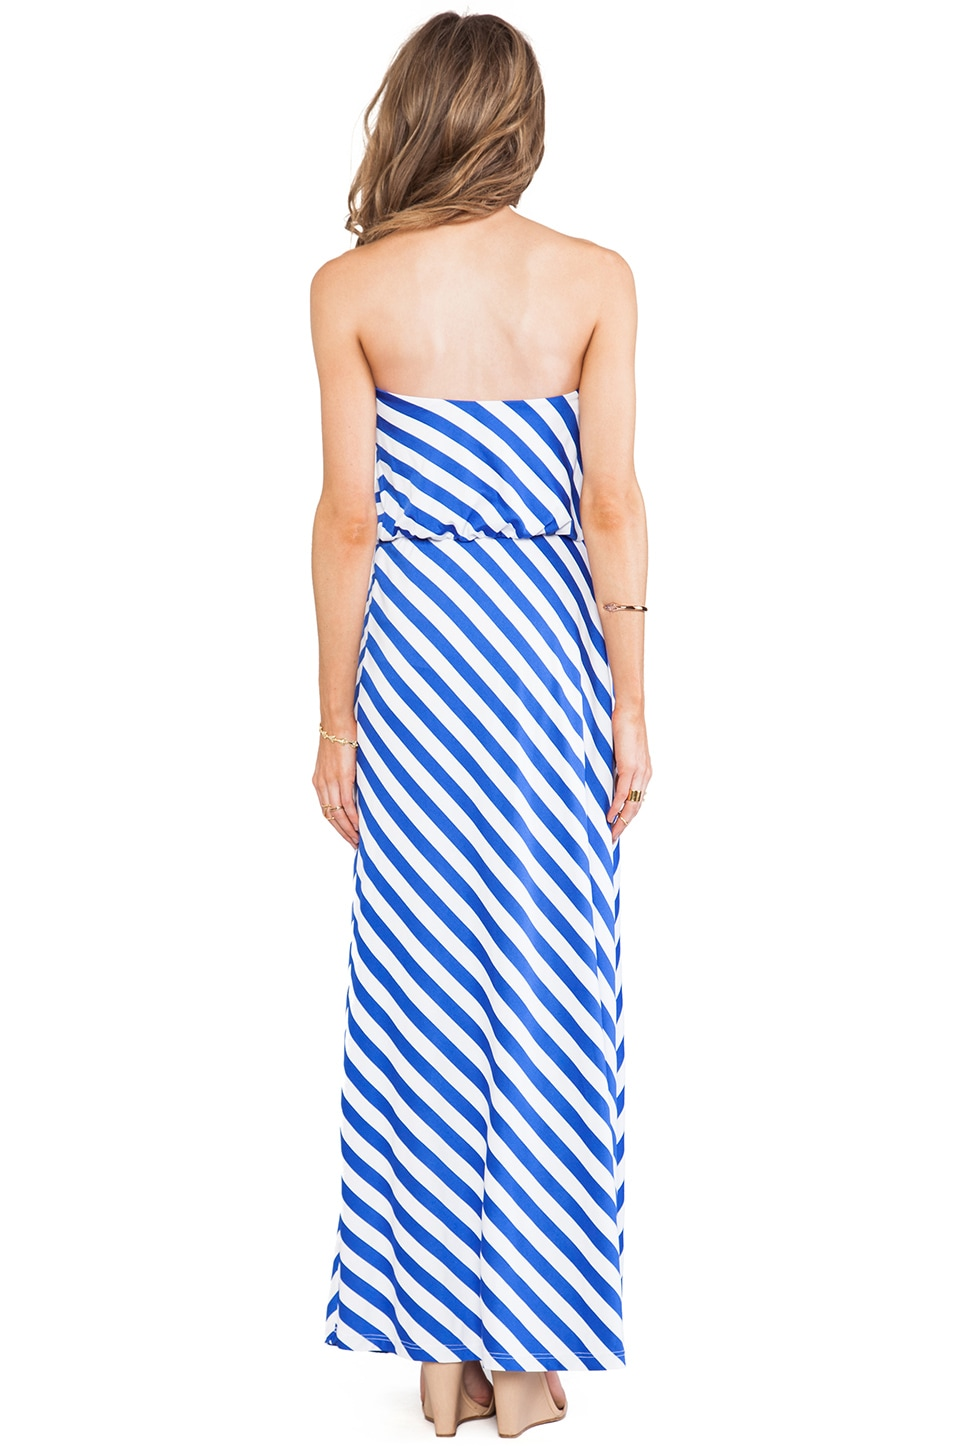 "Susana Monaco Stripe Supplex Tube 40"" Dress in Topaz/Sugar"